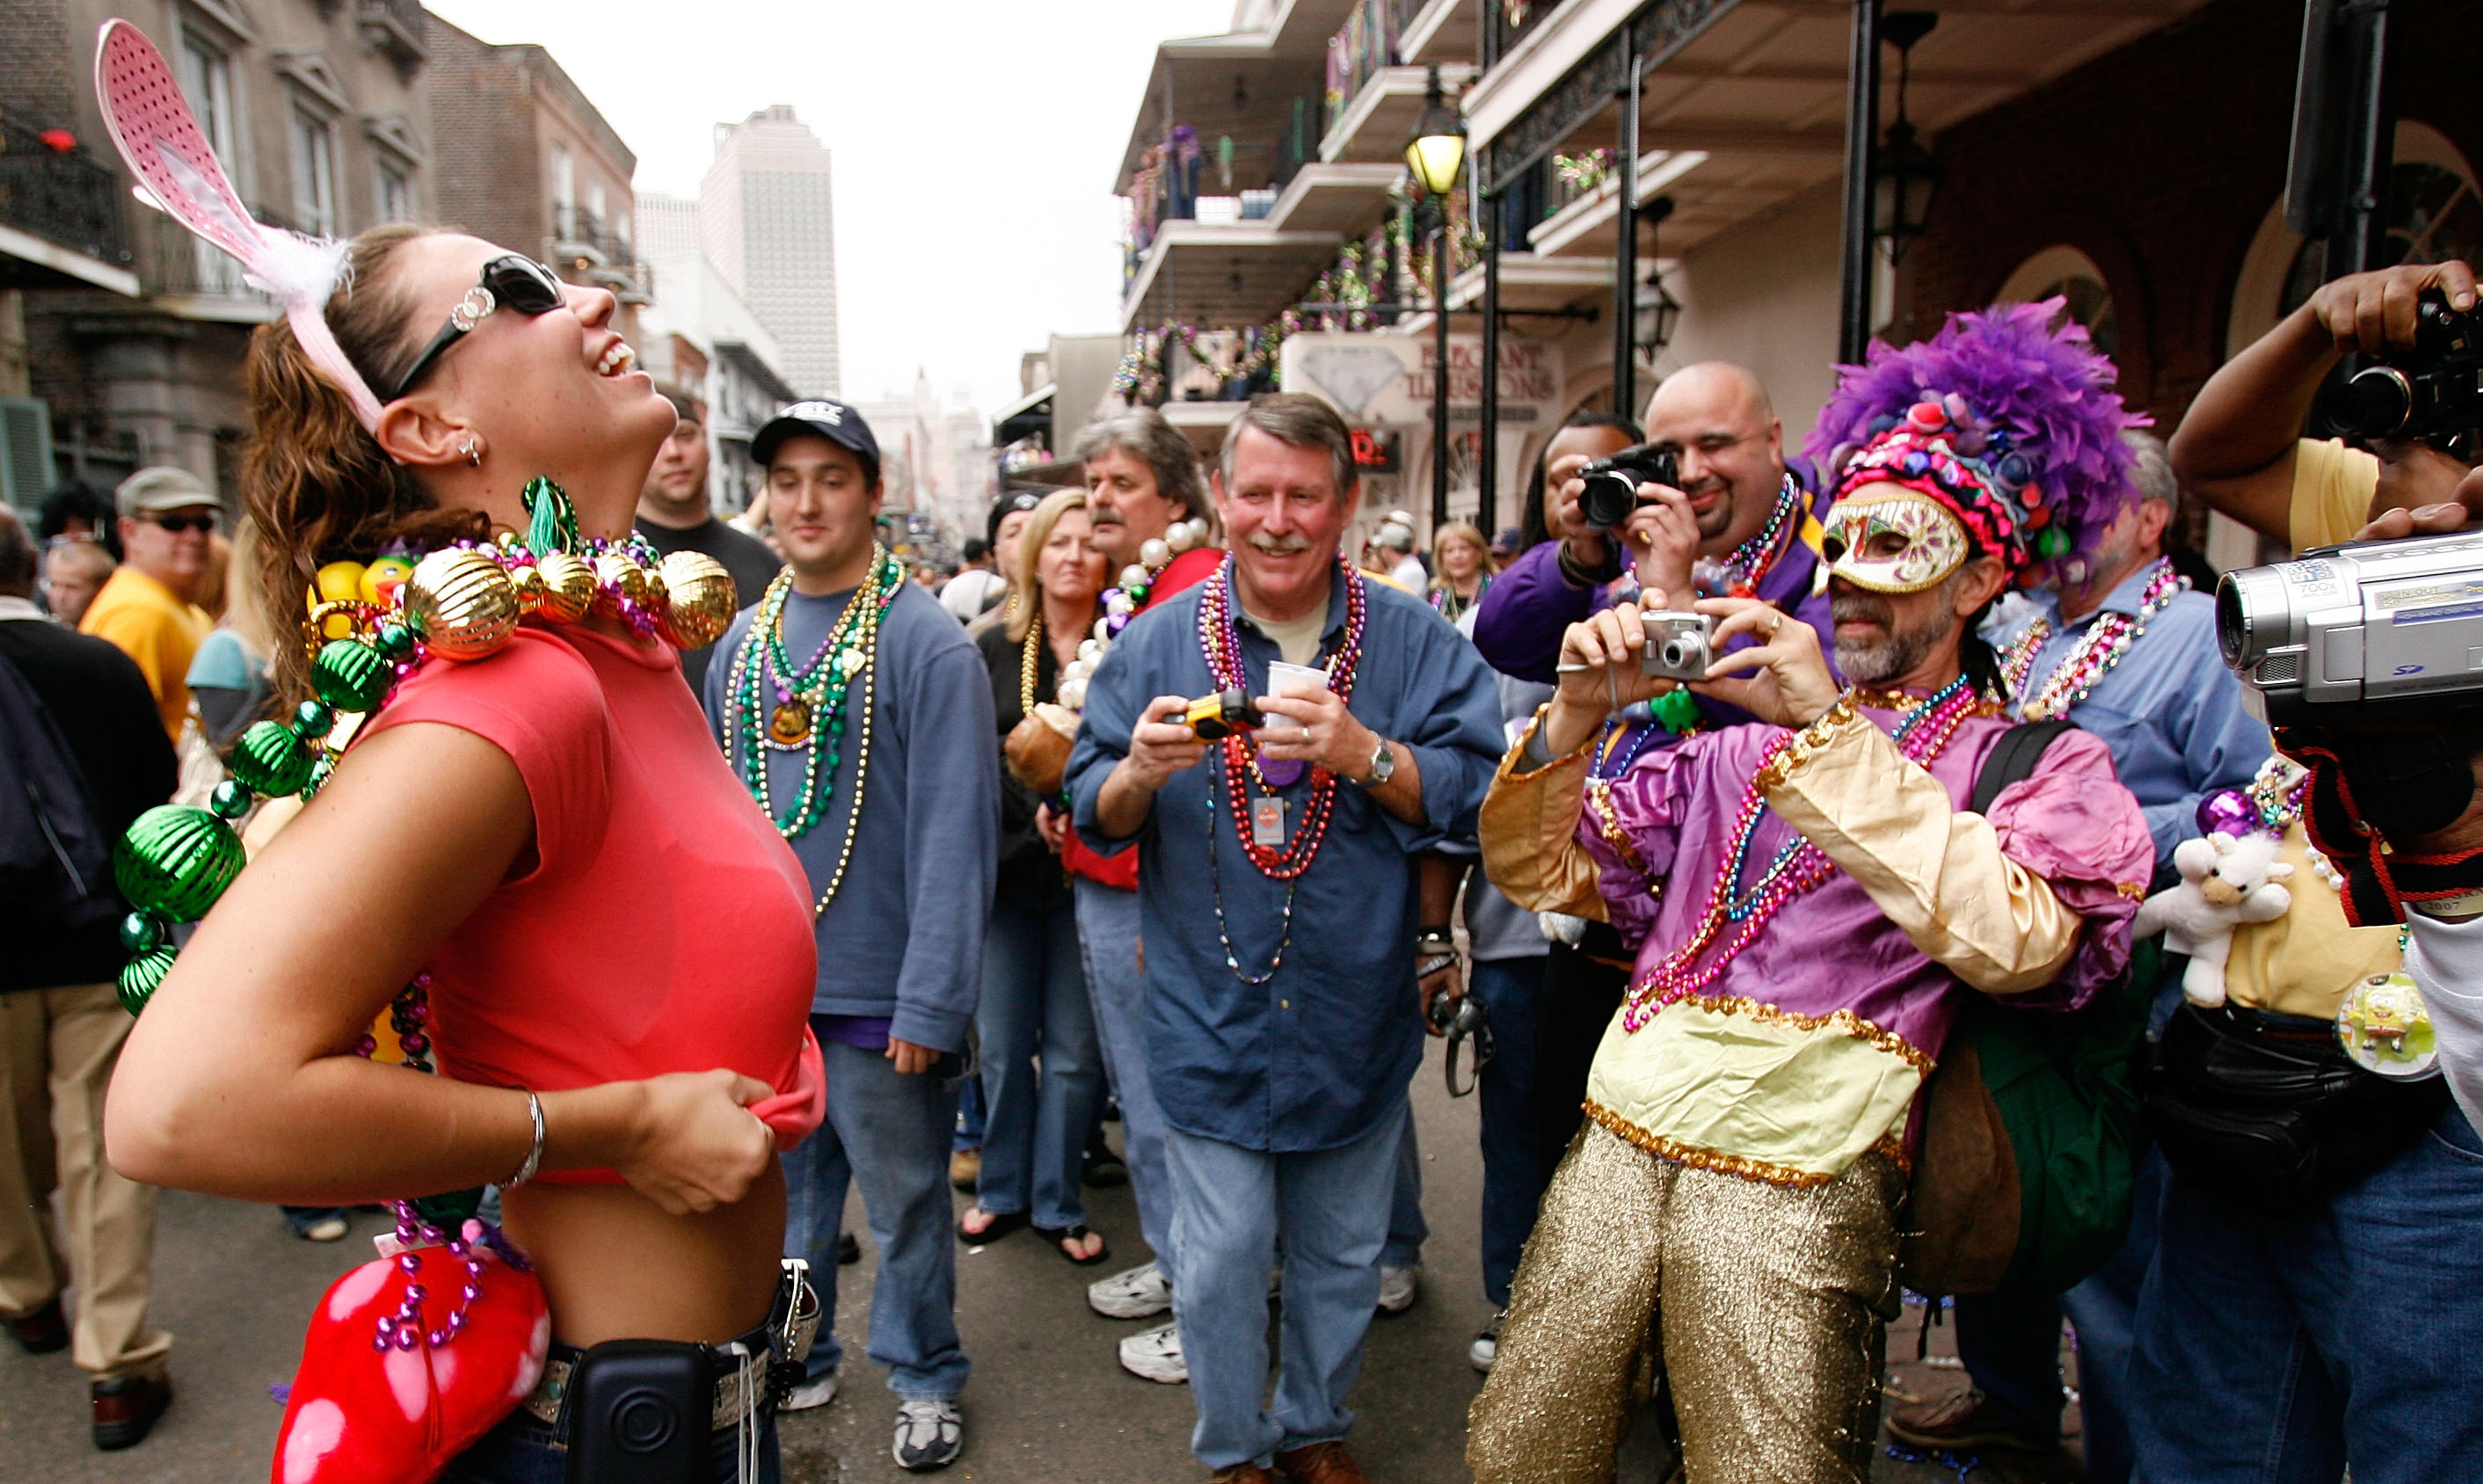 Revelers with cameras crowd Bourbon Street on February 20, 2007.